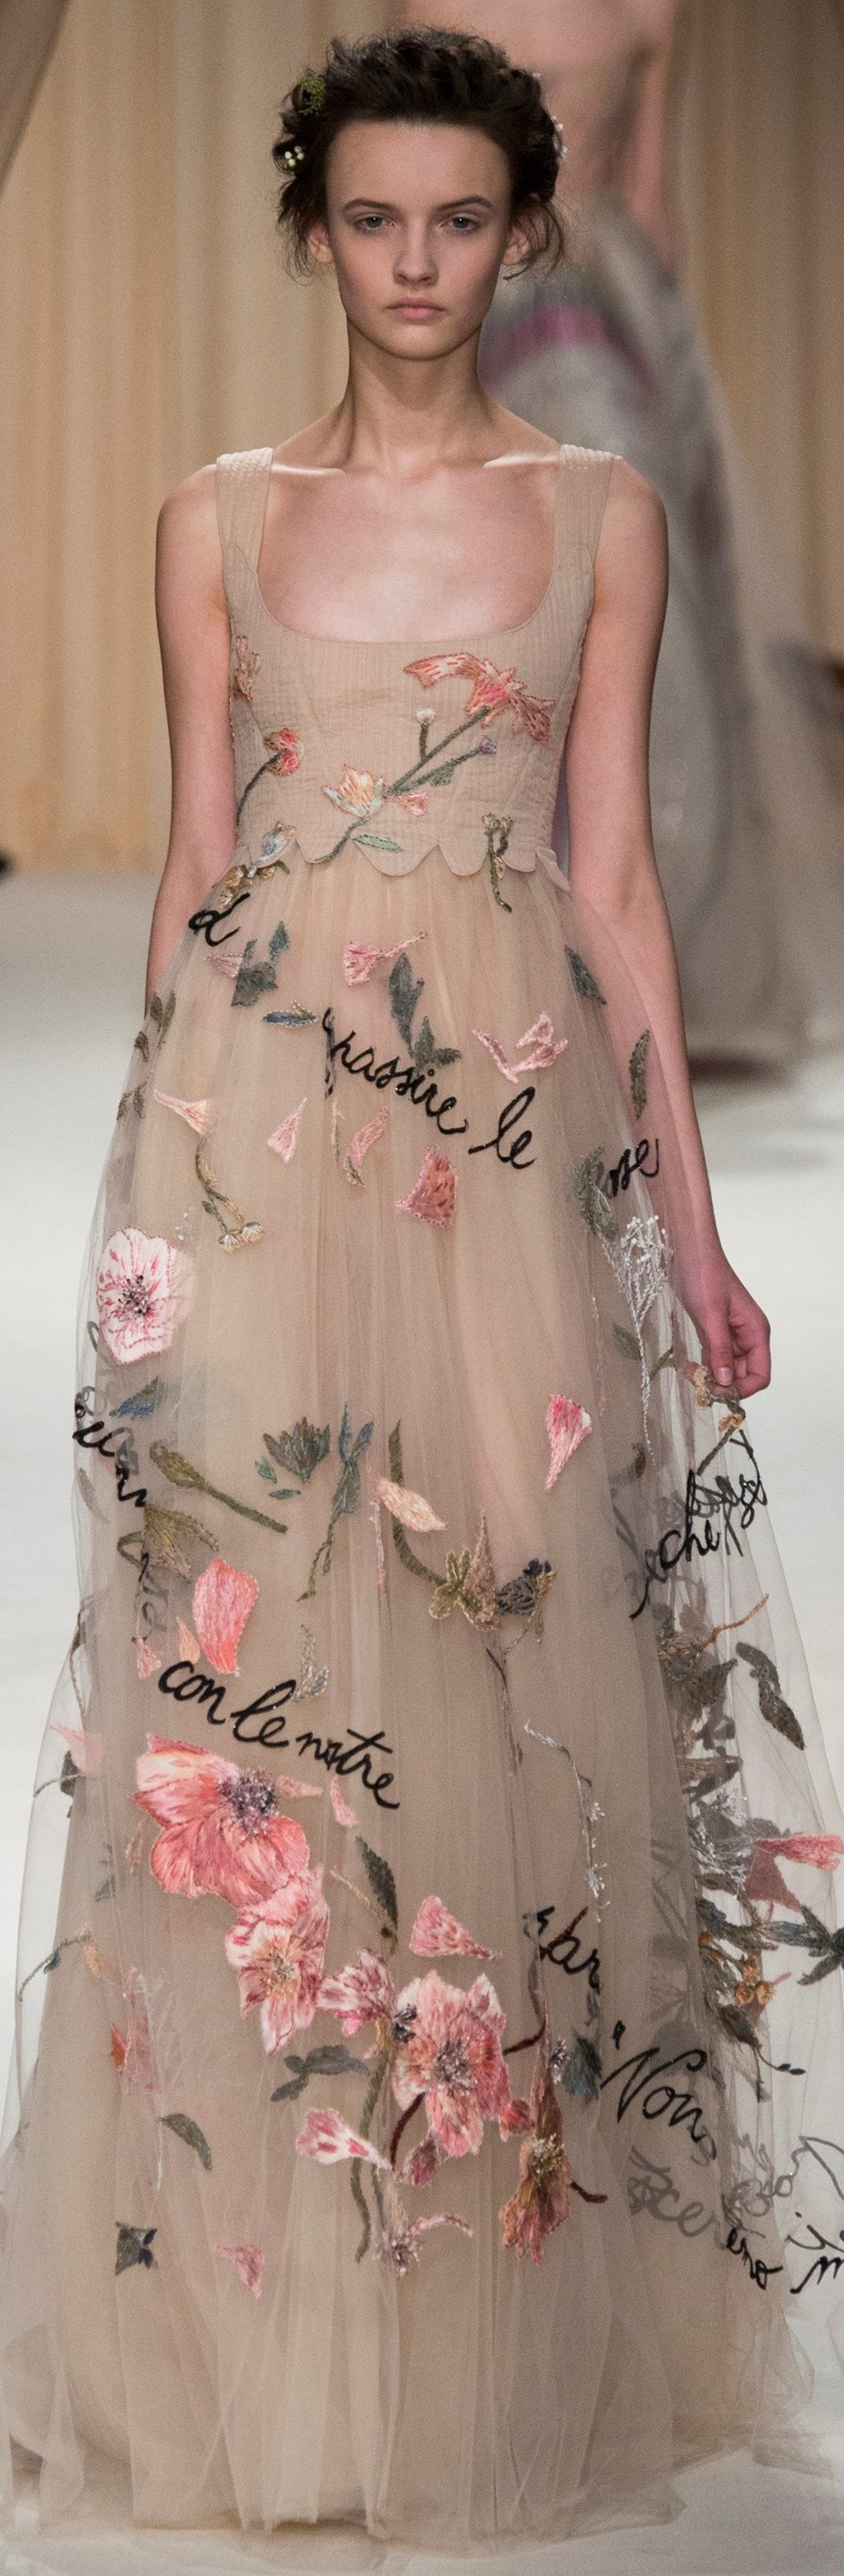 Valentino Beautiful Flower Adorned Fairy Wedding Or Ball Gown Romantic Gypsy Style That Frida